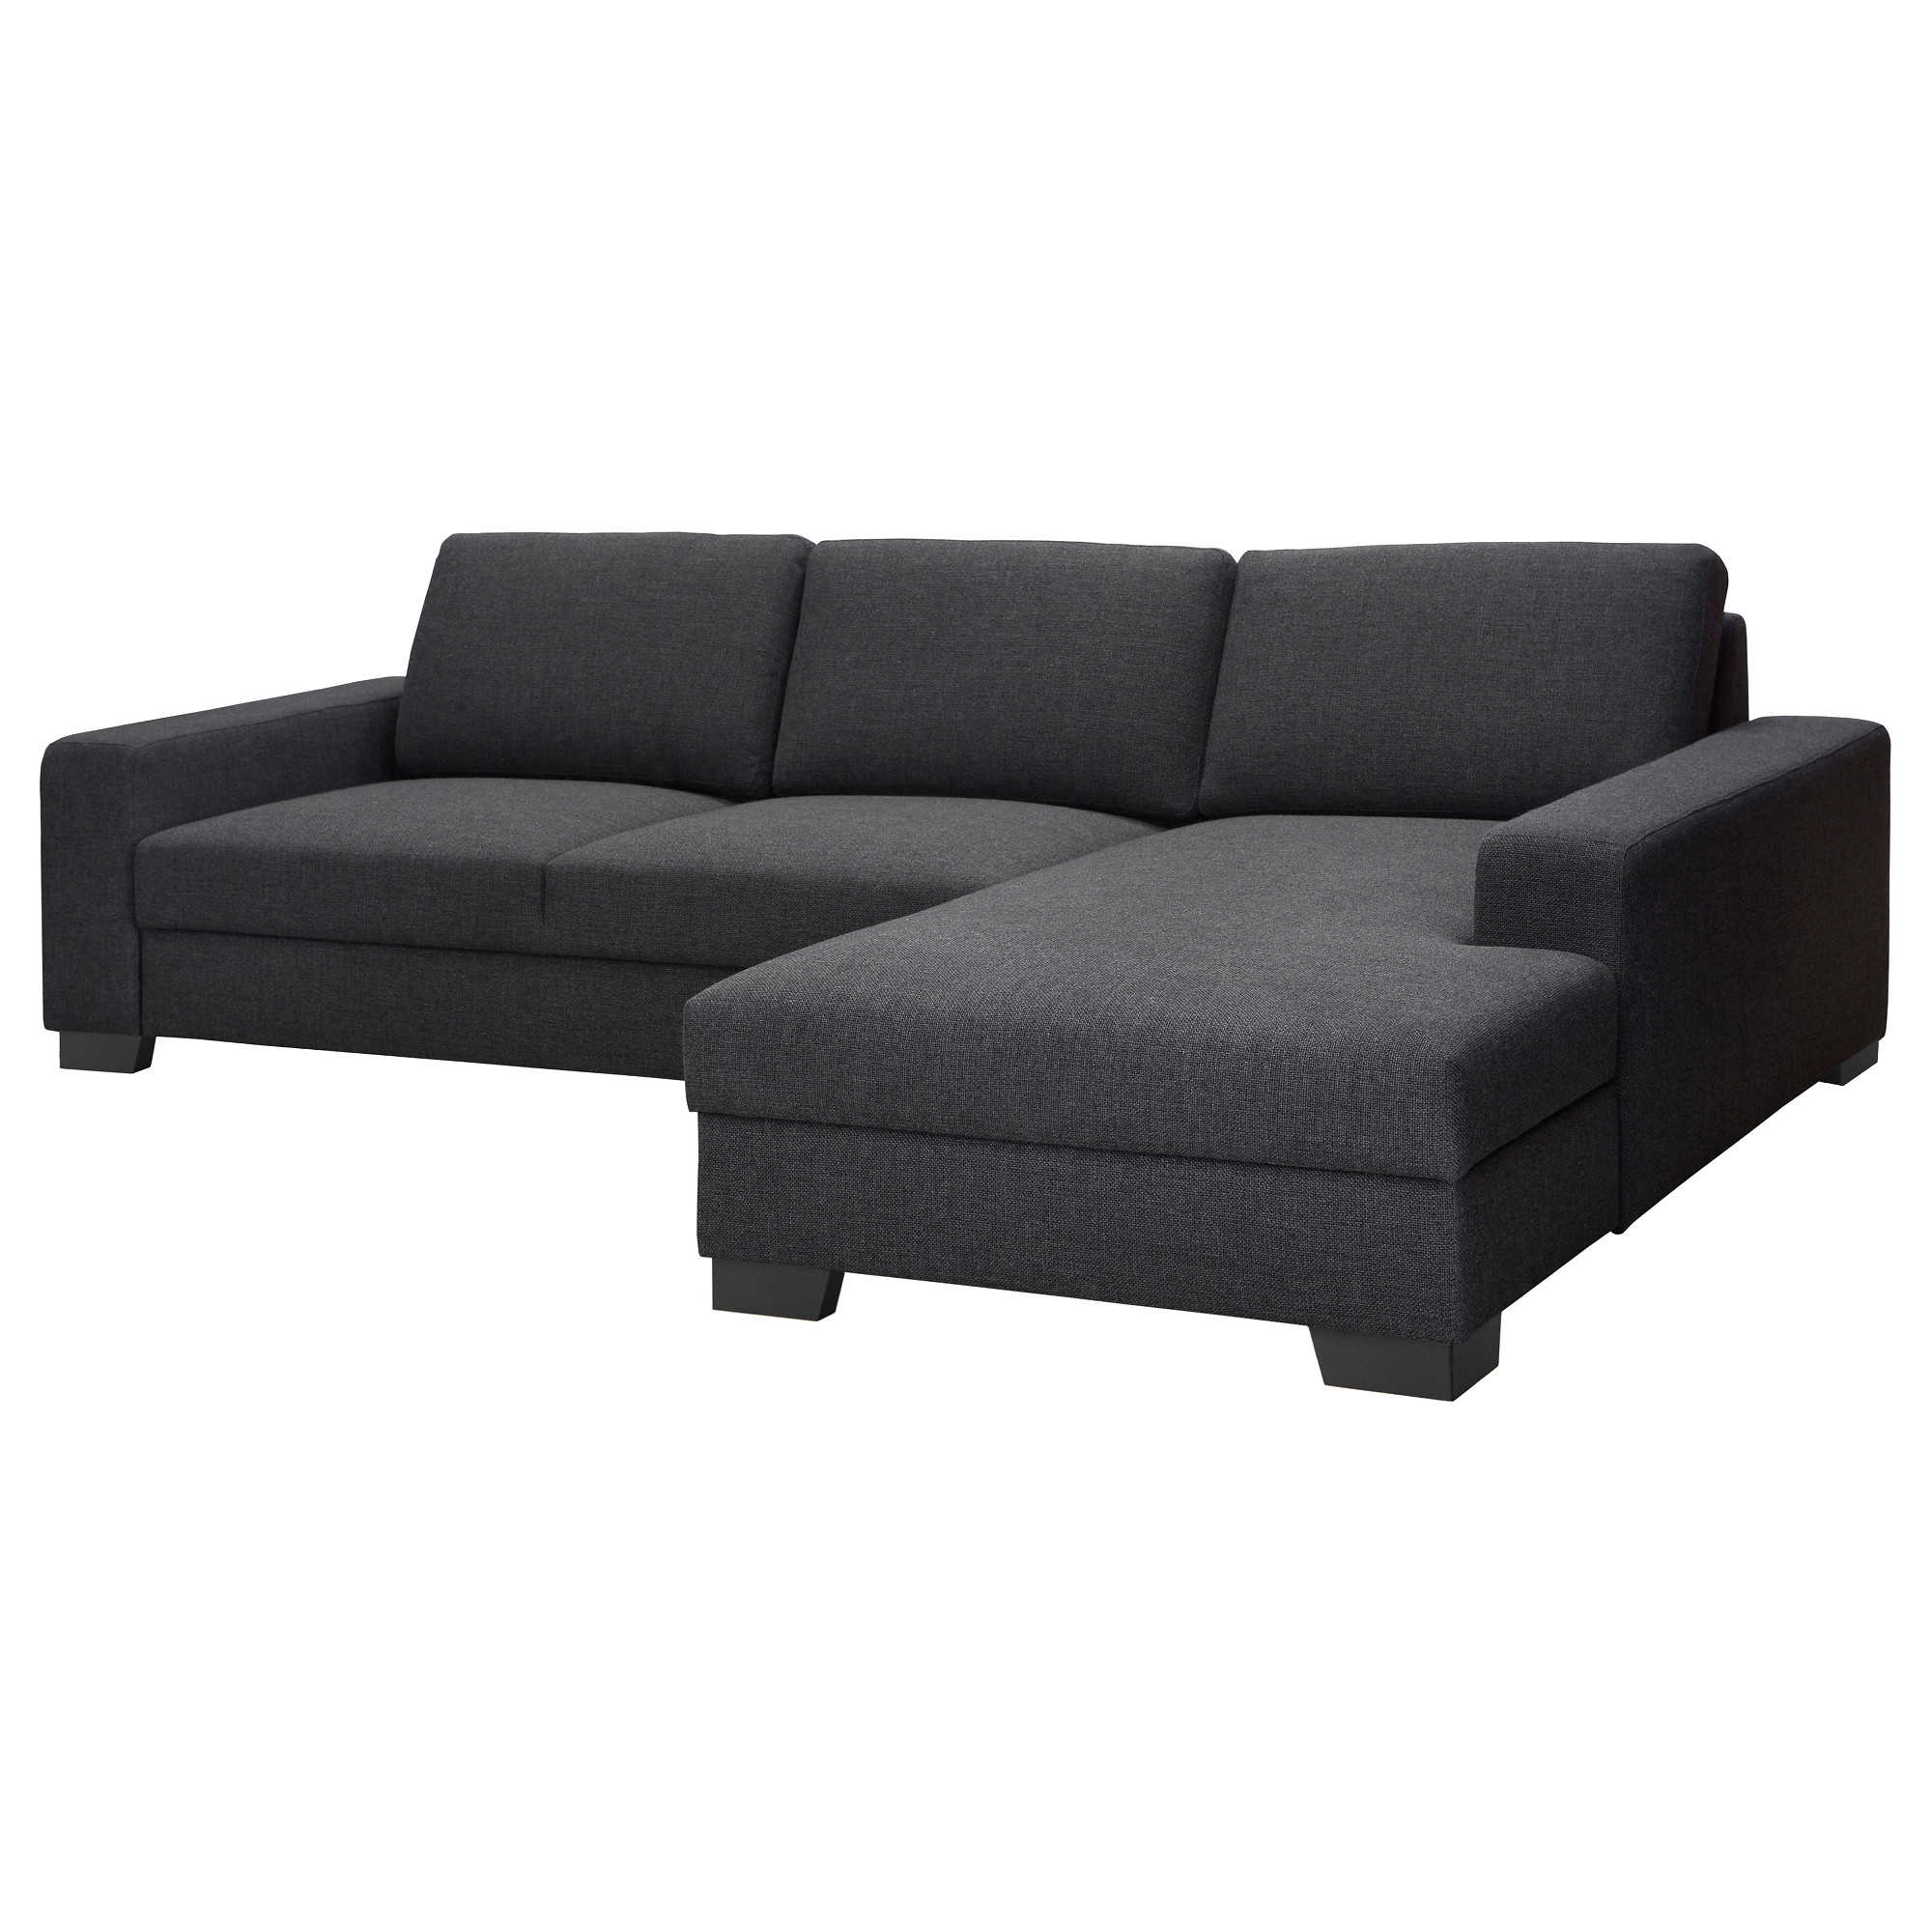 wohnzimmer couch g nstig. Black Bedroom Furniture Sets. Home Design Ideas